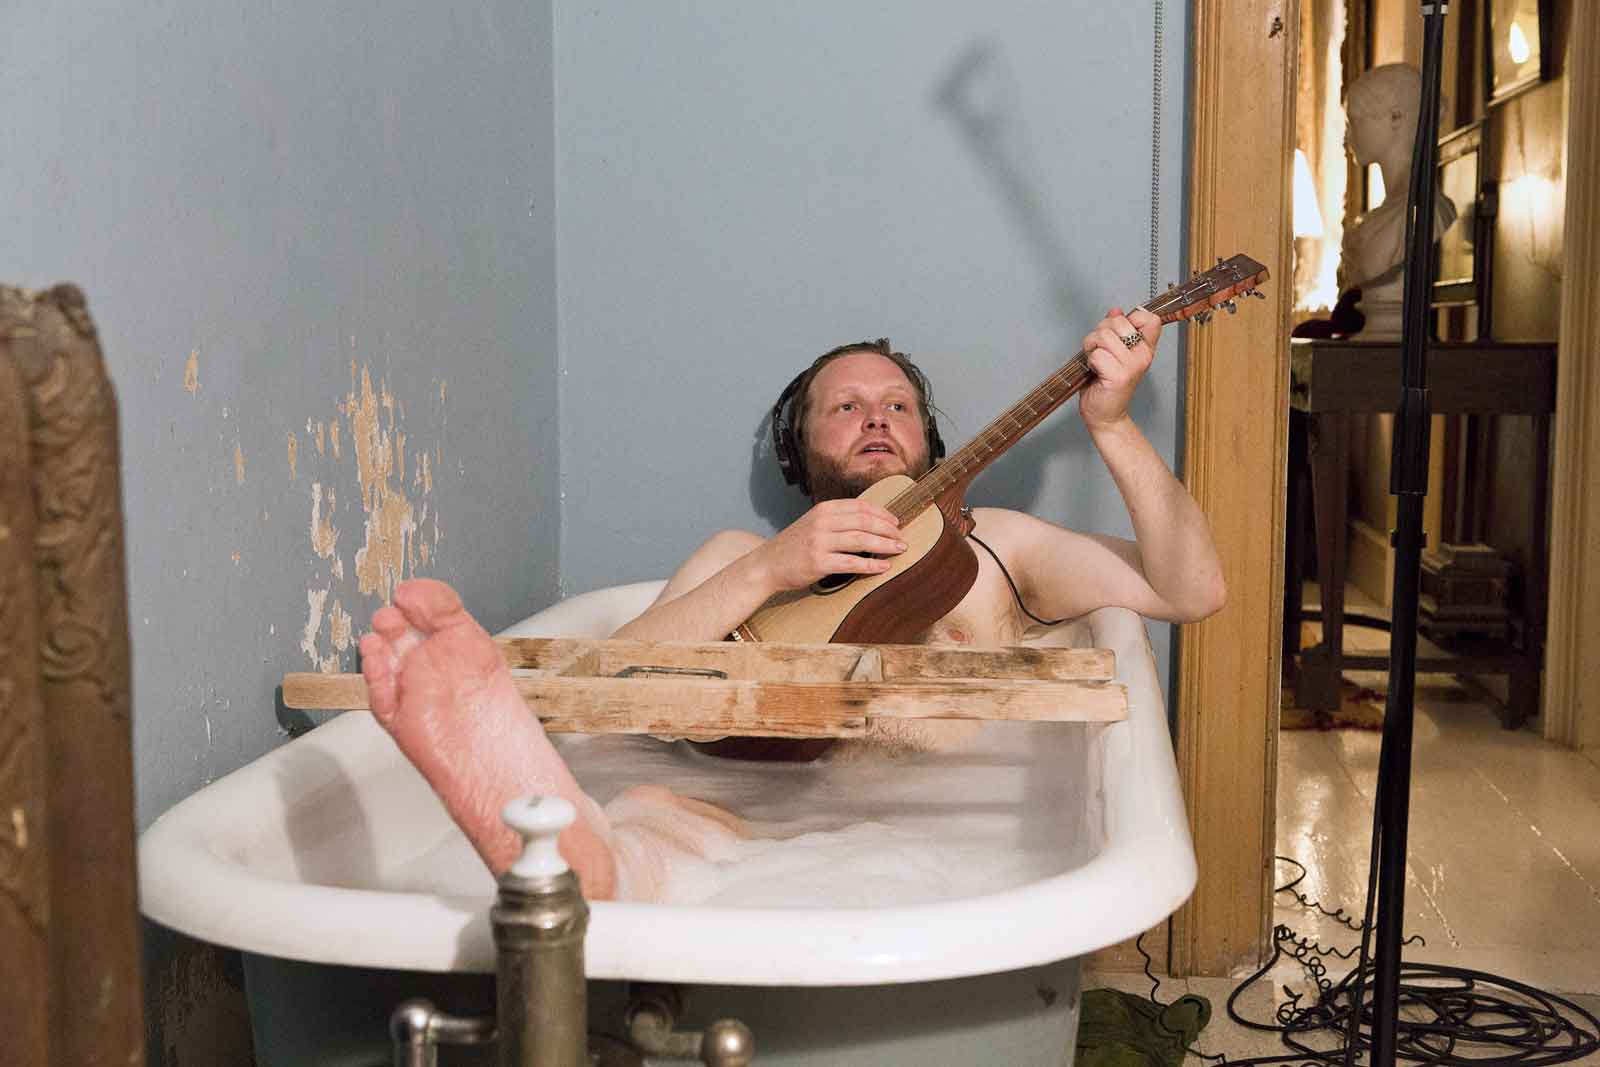 Ragnar Kjartansson,  The Visitors  (still), 2012. Nine-channel video projection (color, sound; 64:00 minutes). Gift of Graham and Ann Gund to the Institute of Contemporary Art, Boston, Solomon R. Guggenheim Museum, New York, and Gund Gallery at Kenyon College. Courtesy the artist, Luhring Augustine, New York, and i8 Gallery, Reykjavik. © Ragnar Kjartansson